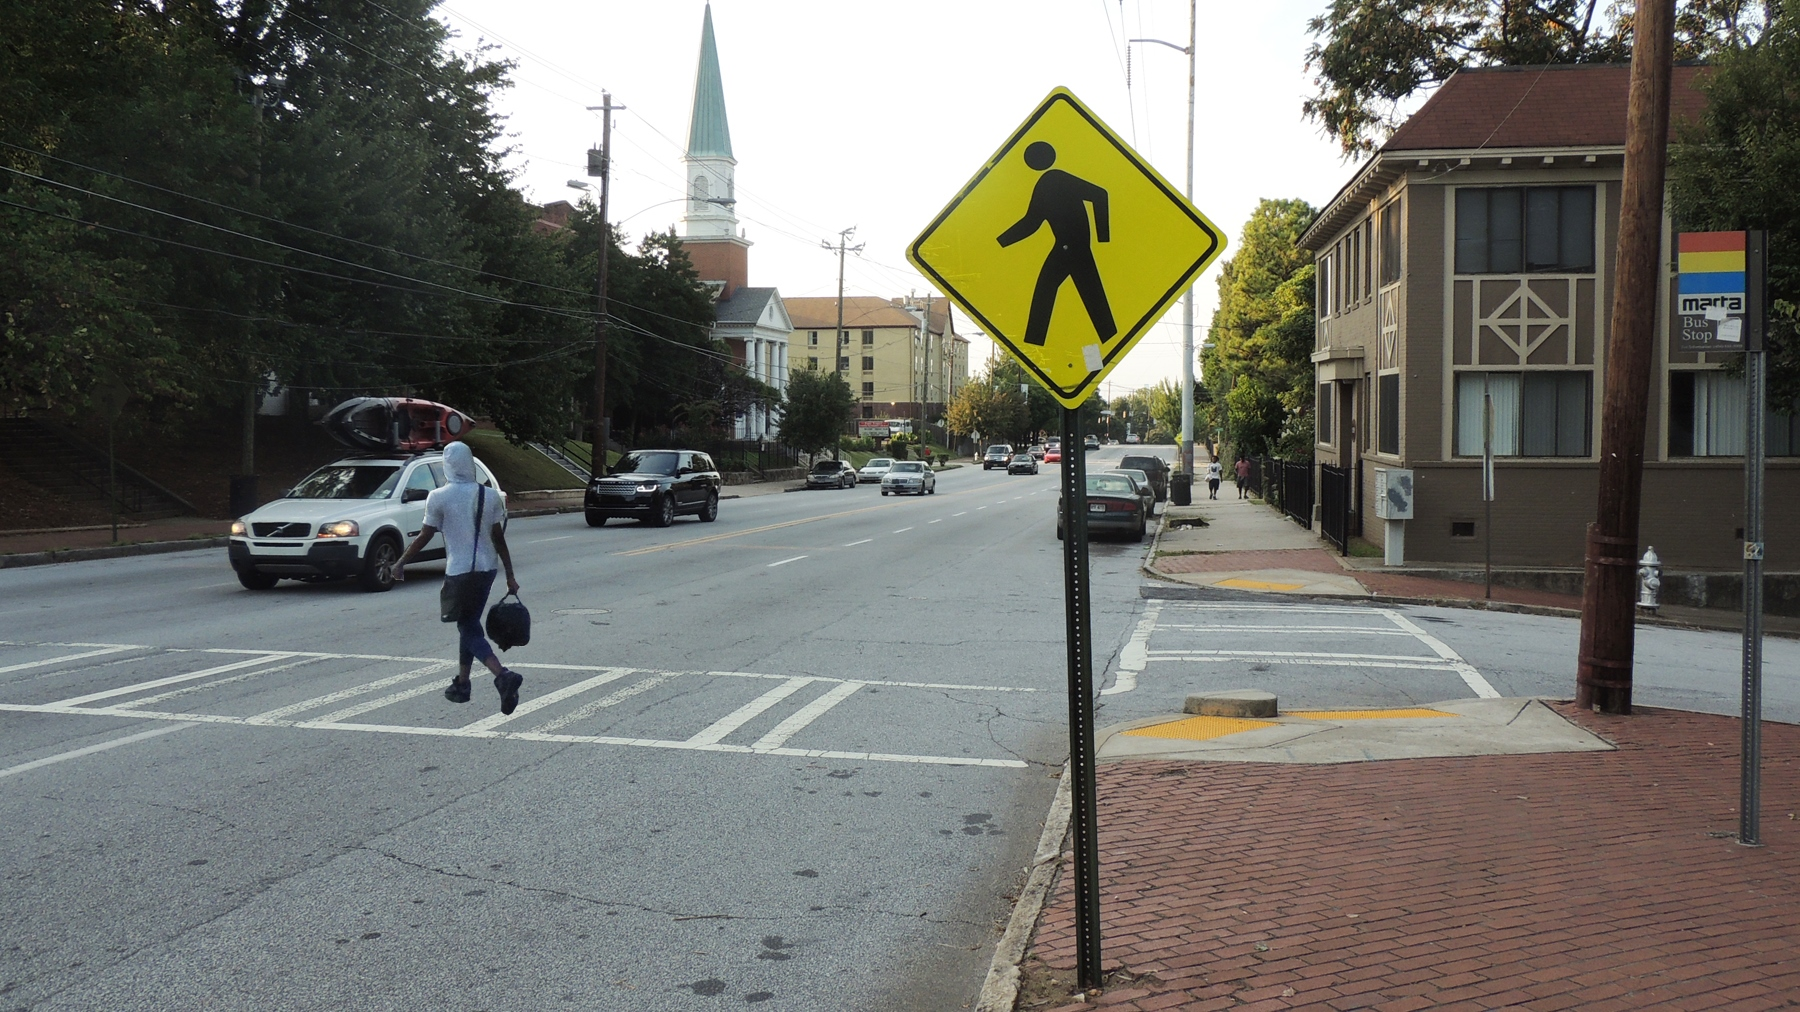 Surveying road conditions on foot - PEDS